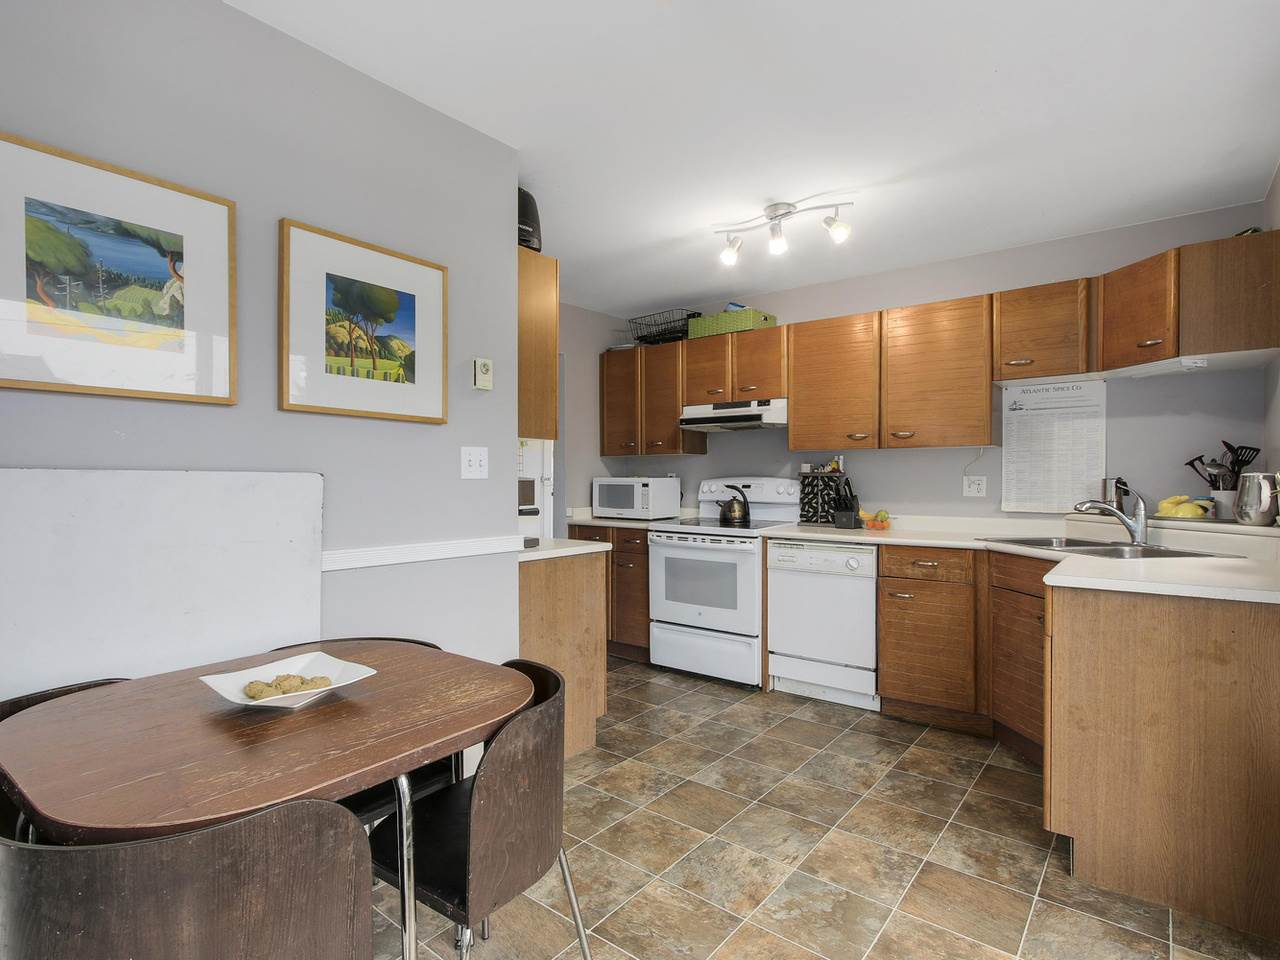 Main Photo: 201 2339 SHAUGHNESSY Street in Port Coquitlam: Central Pt Coquitlam Condo for sale : MLS® # R2131336